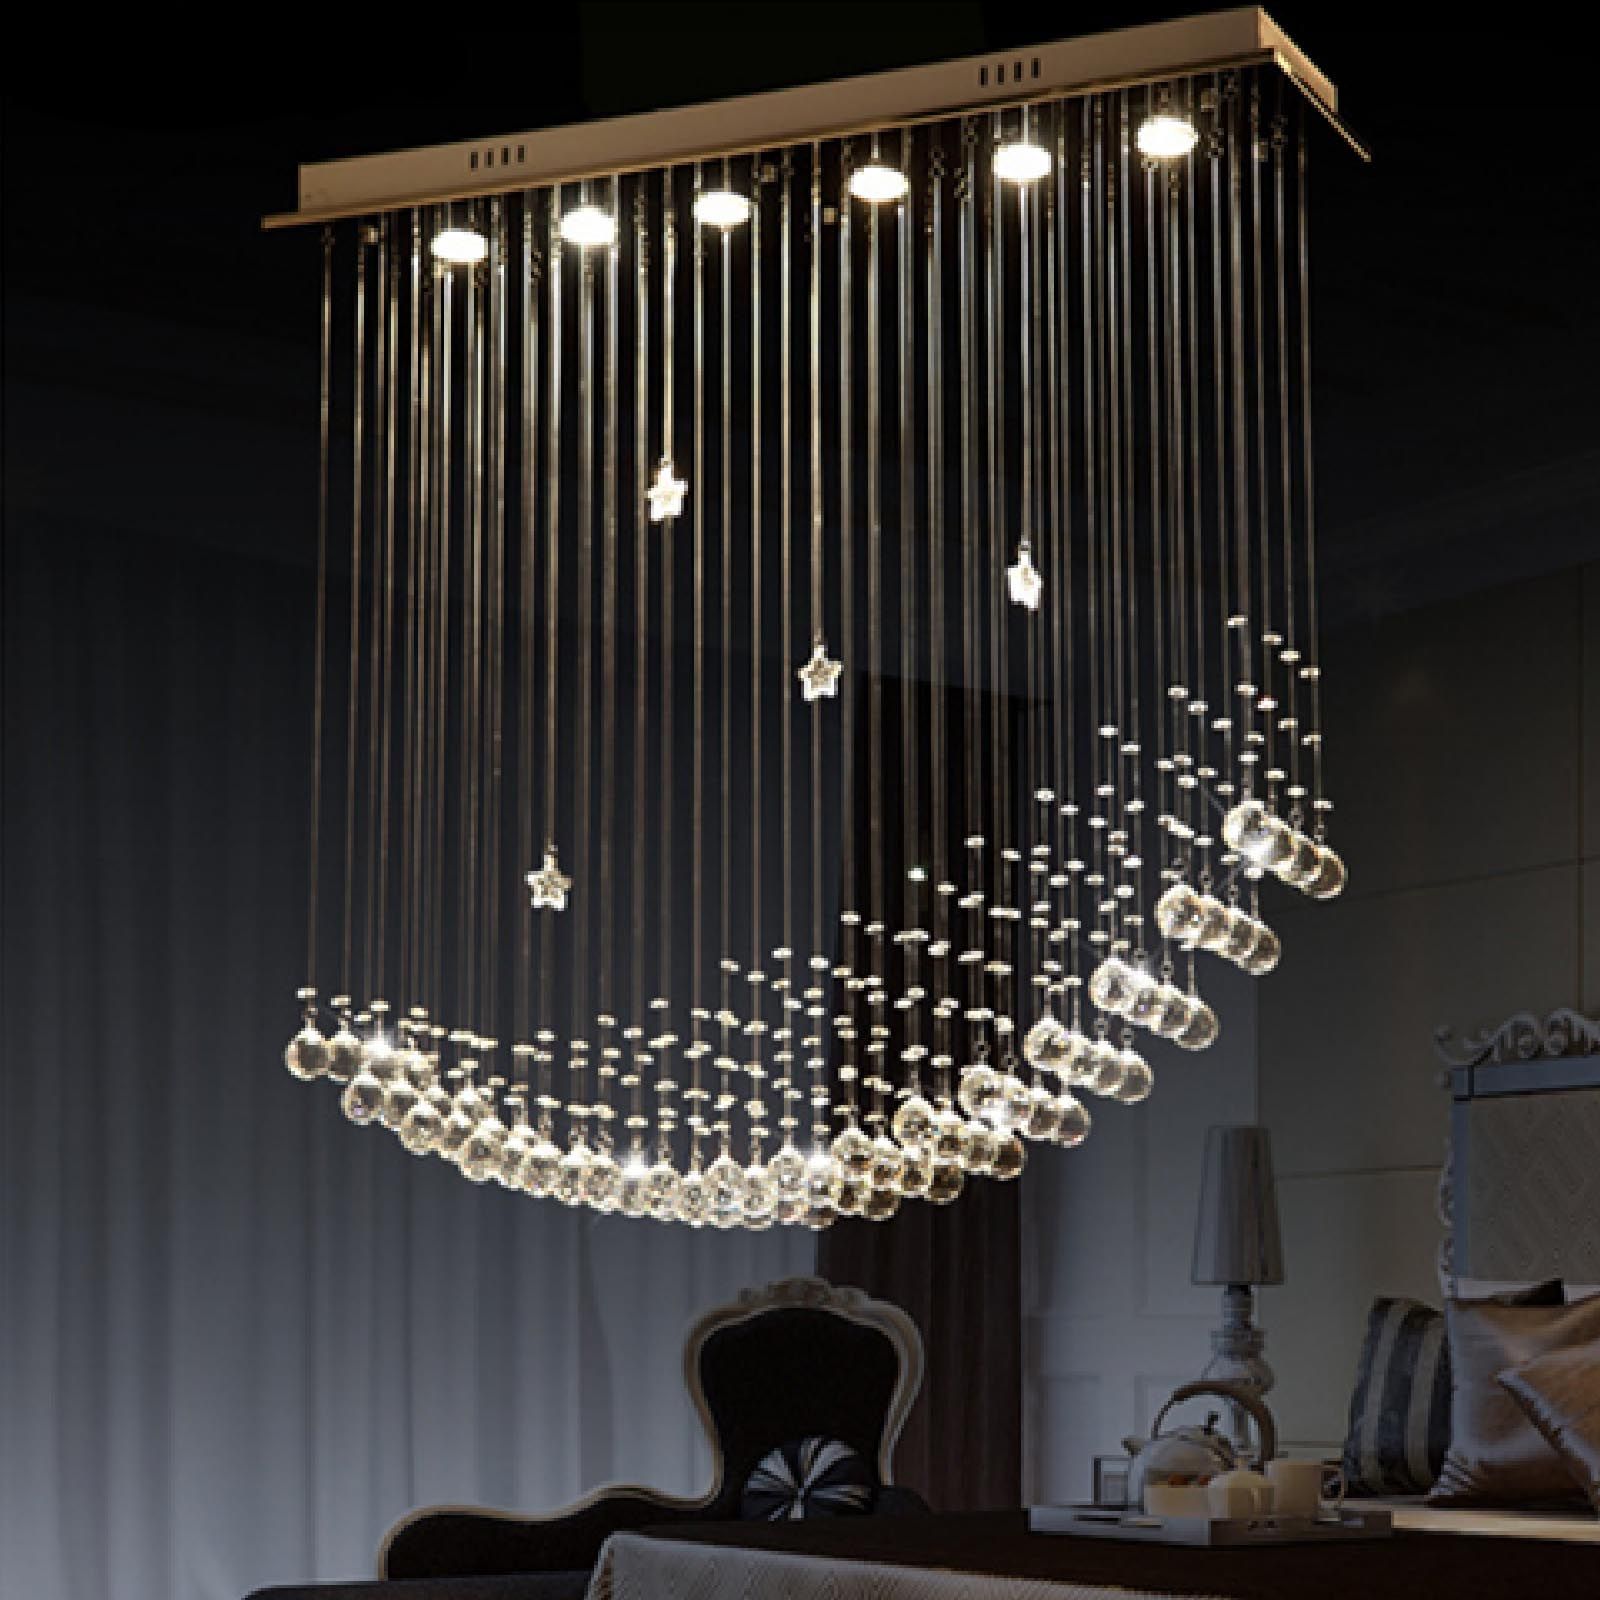 Byb modern chandelier rain drop lighting crystal ball fixture